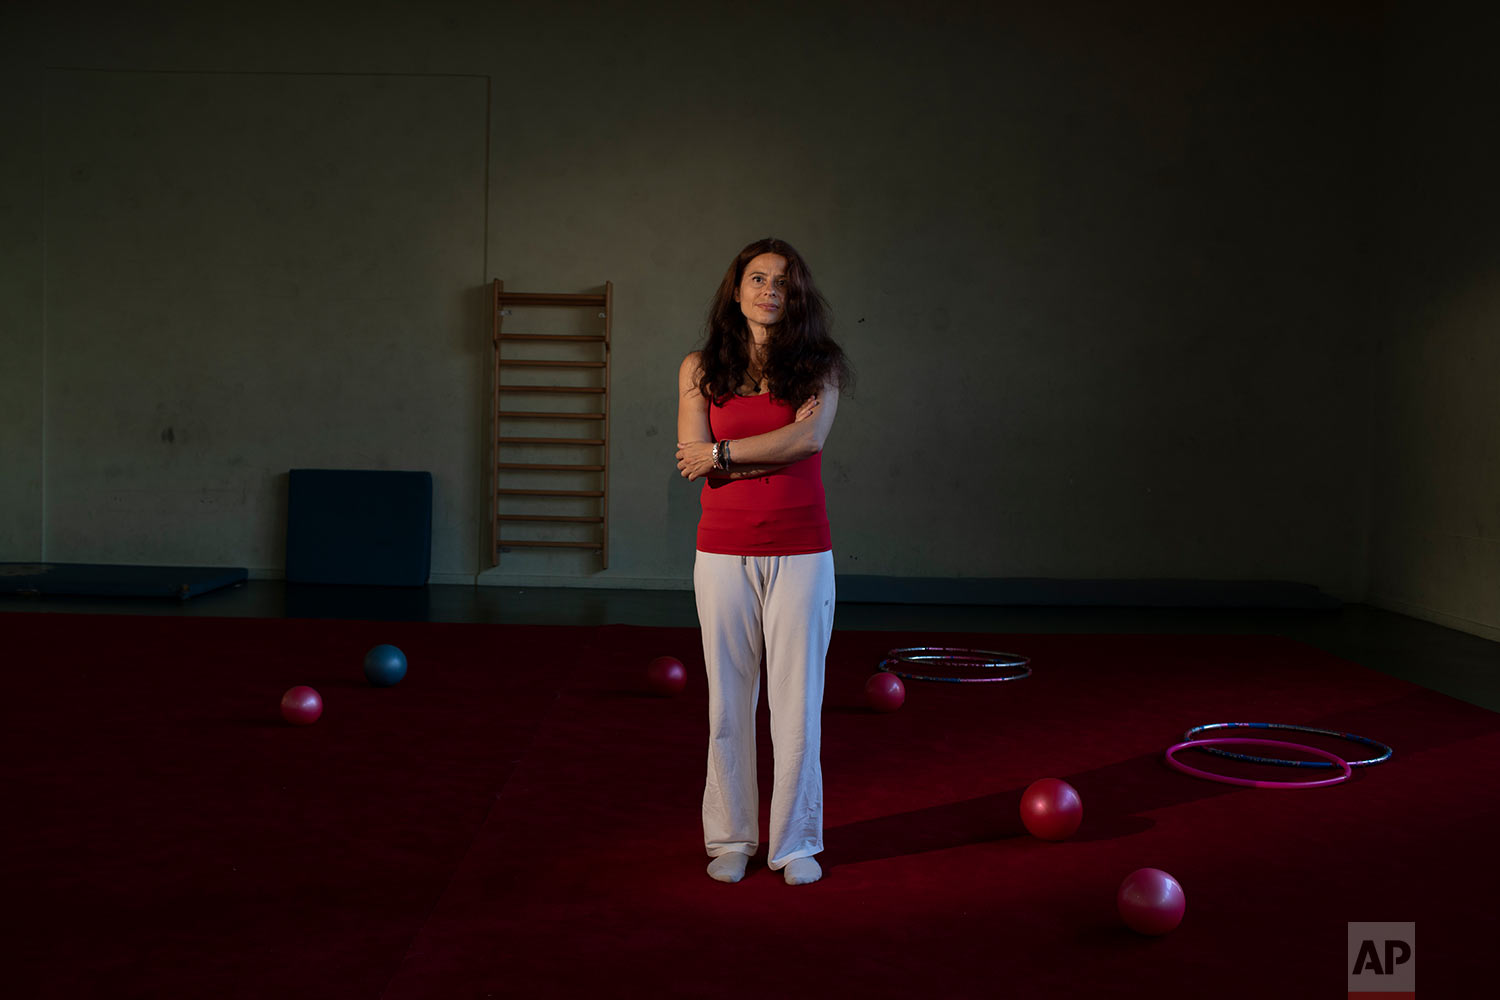 Anna Zeza, a 43-year-old physical education teacher poses for a photo inside a gum of a school in Athens. (AP Photo/Petros Giannakouris)